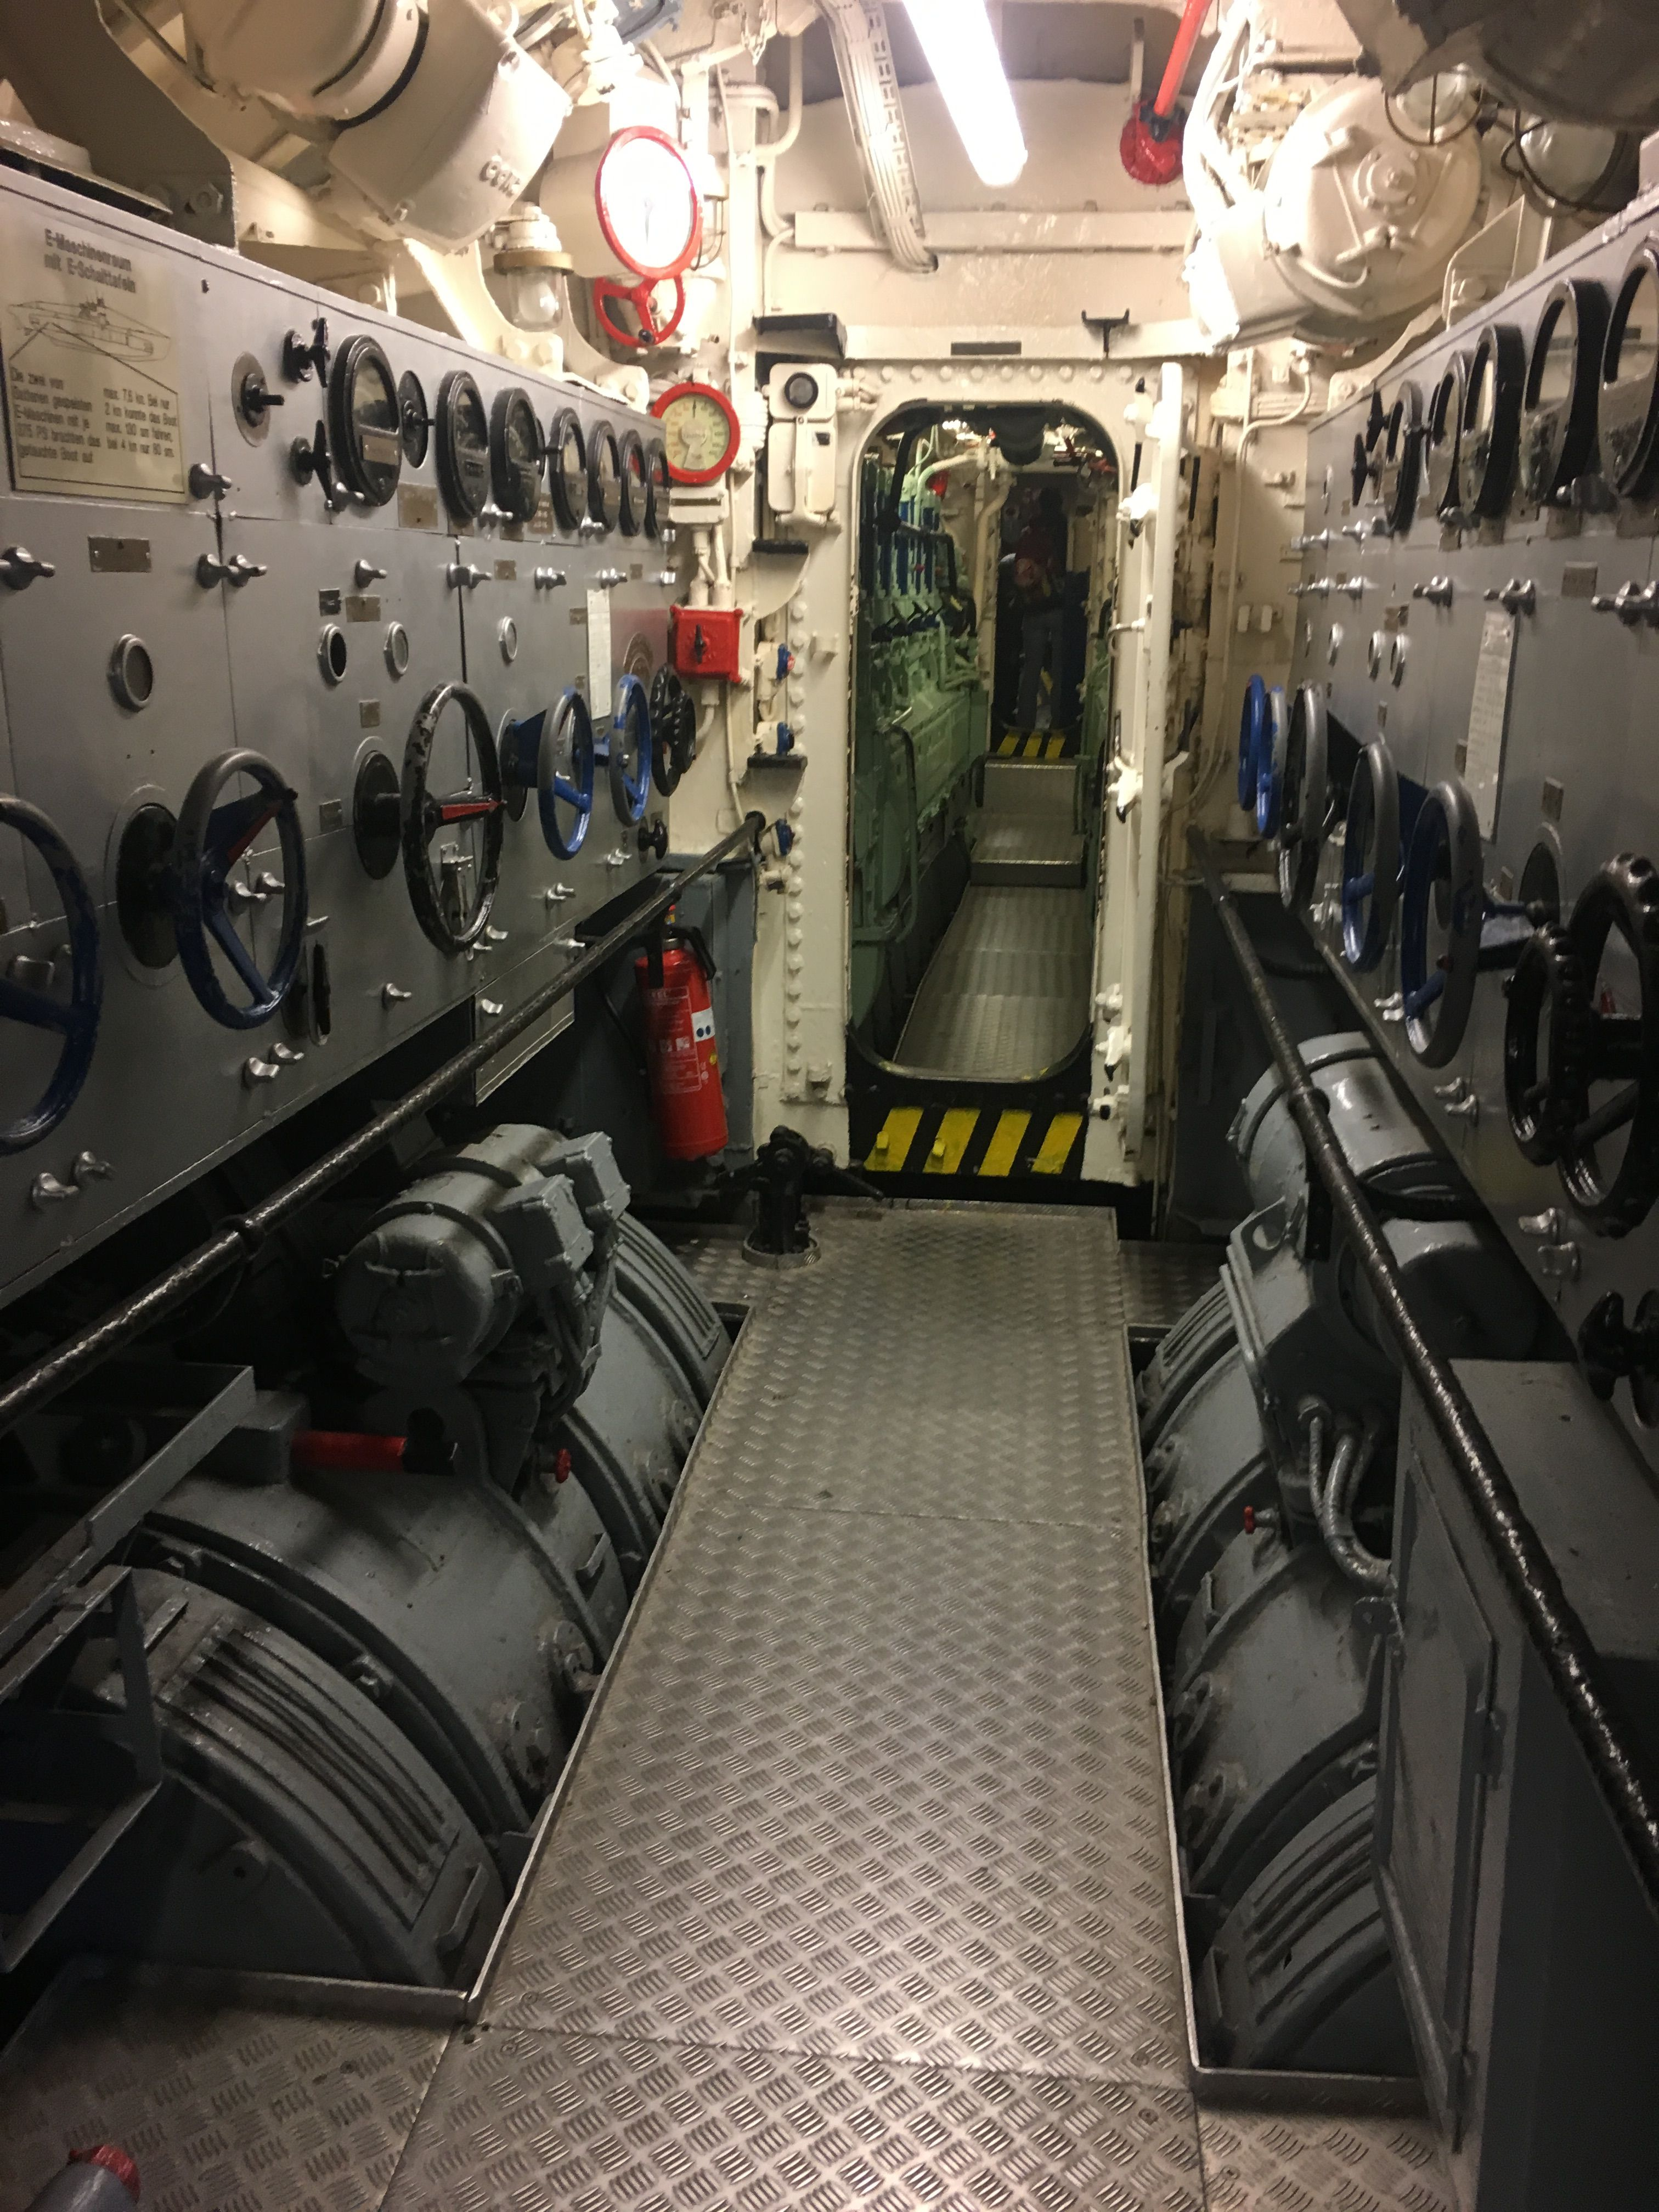 Boat Engine Room: Engine Room View Below Deck On A Submarine.